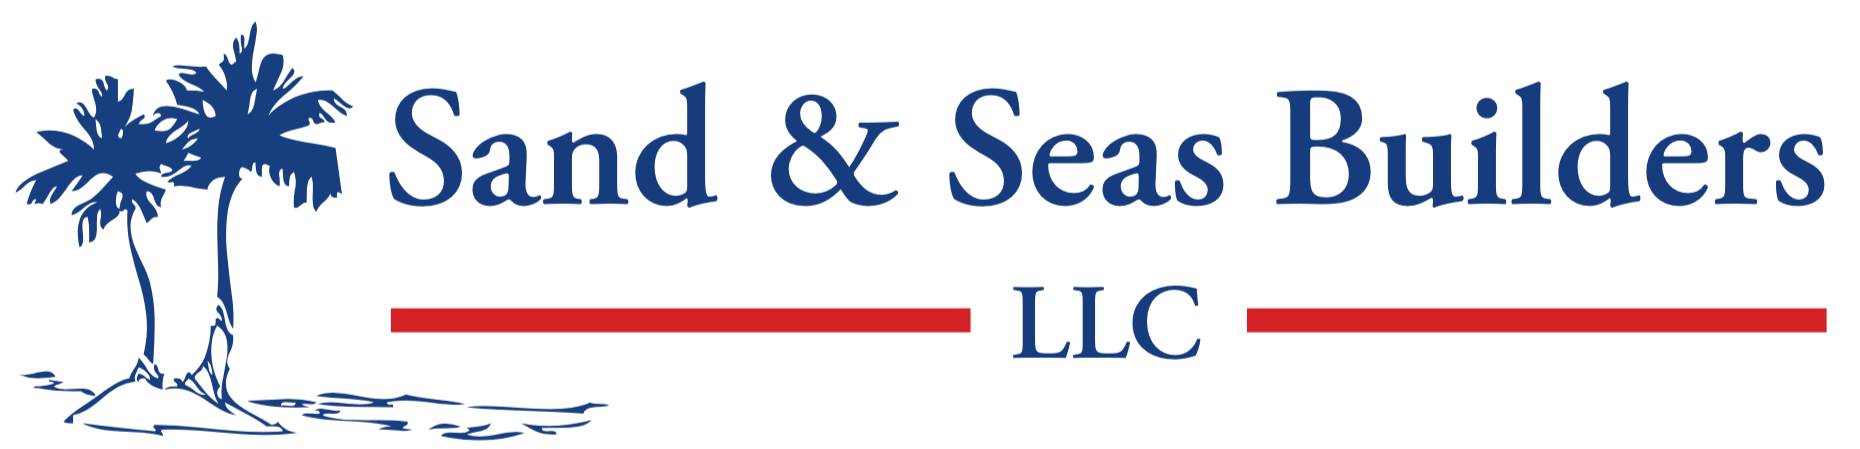 Sand and Seas Builders logo.png